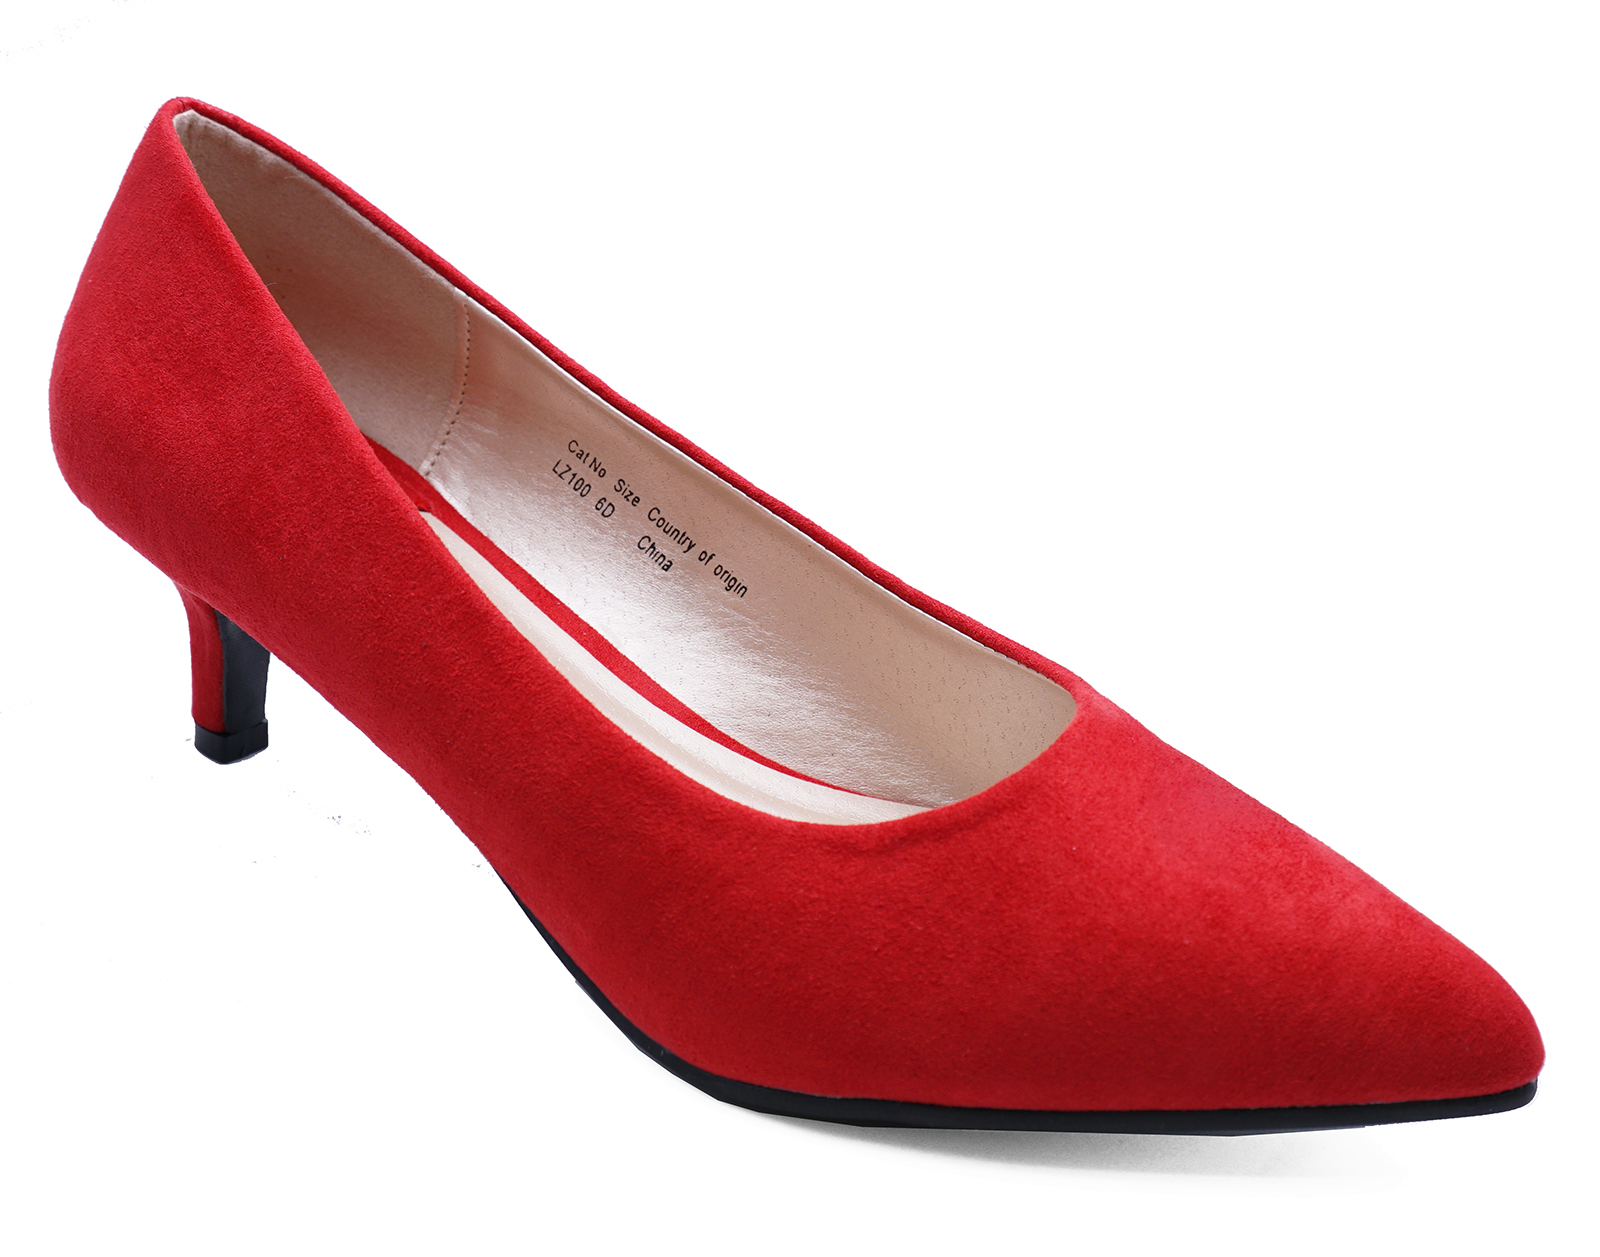 LADIES-RED-SLIP-ON-KITTEN-LOW-HEEL-SMART-WORK-CASUAL-COMFY-COURT-SHOES-SIZES-3-9 thumbnail 6